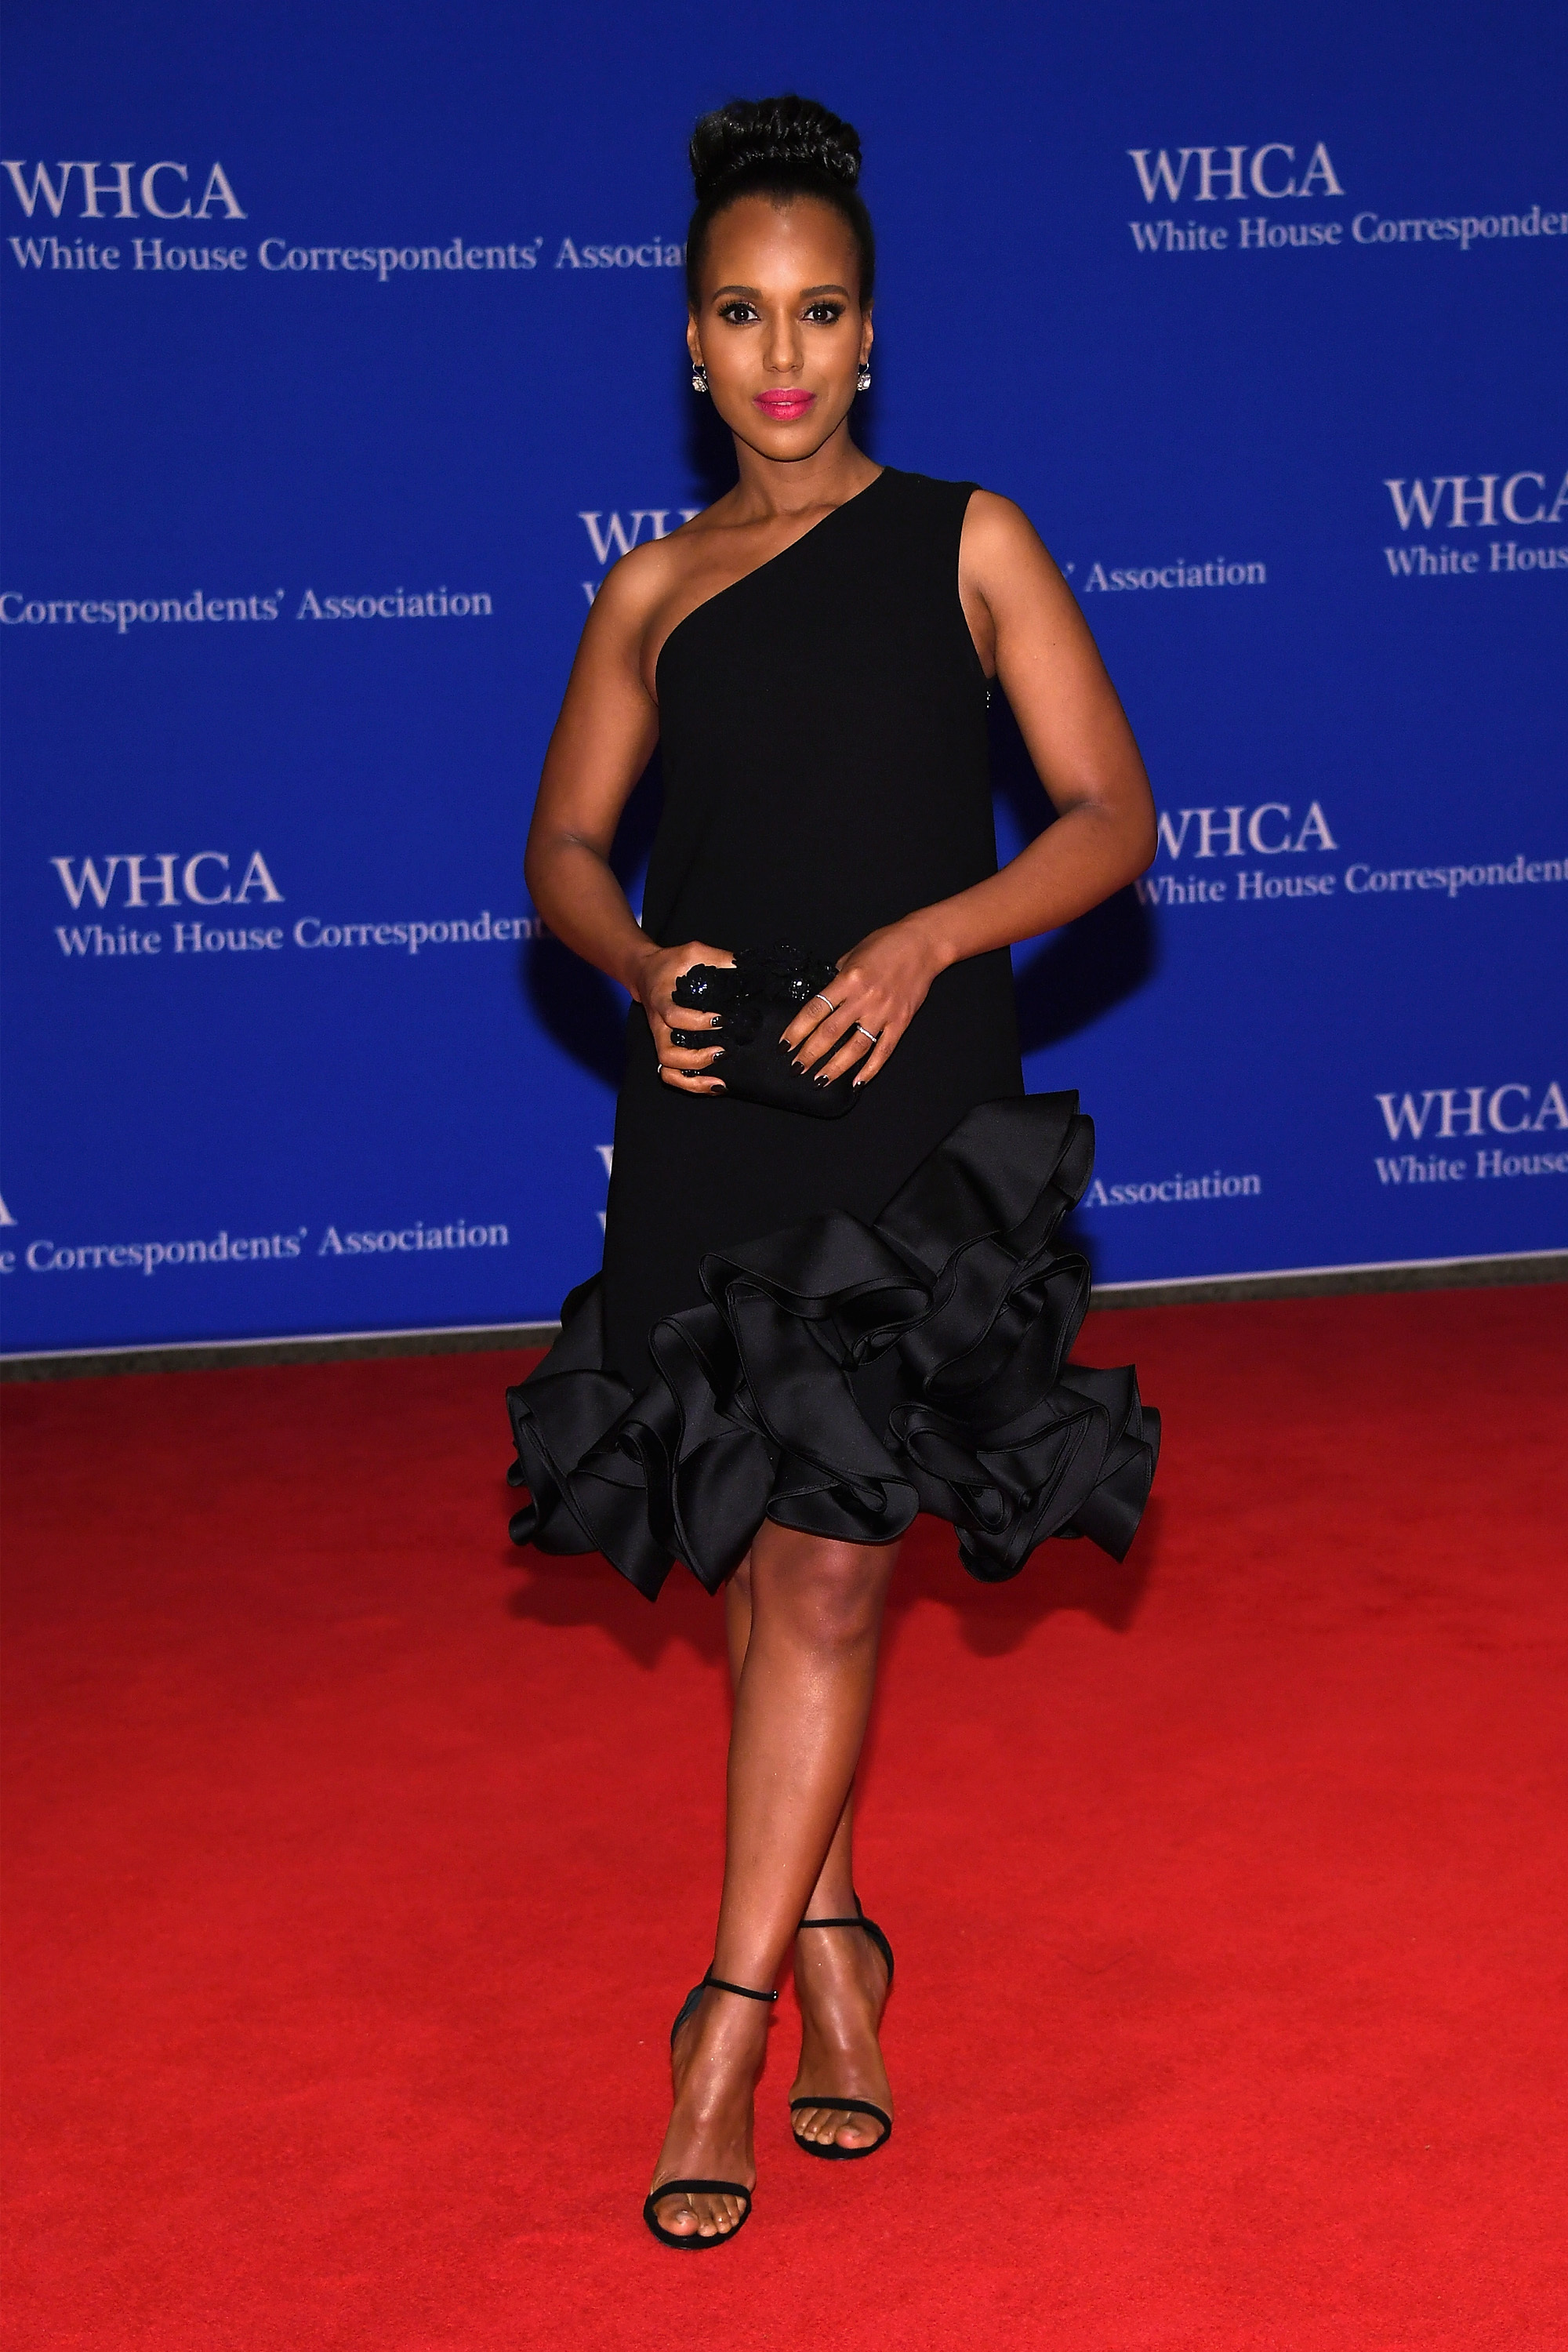 kerry washington white house correspondents